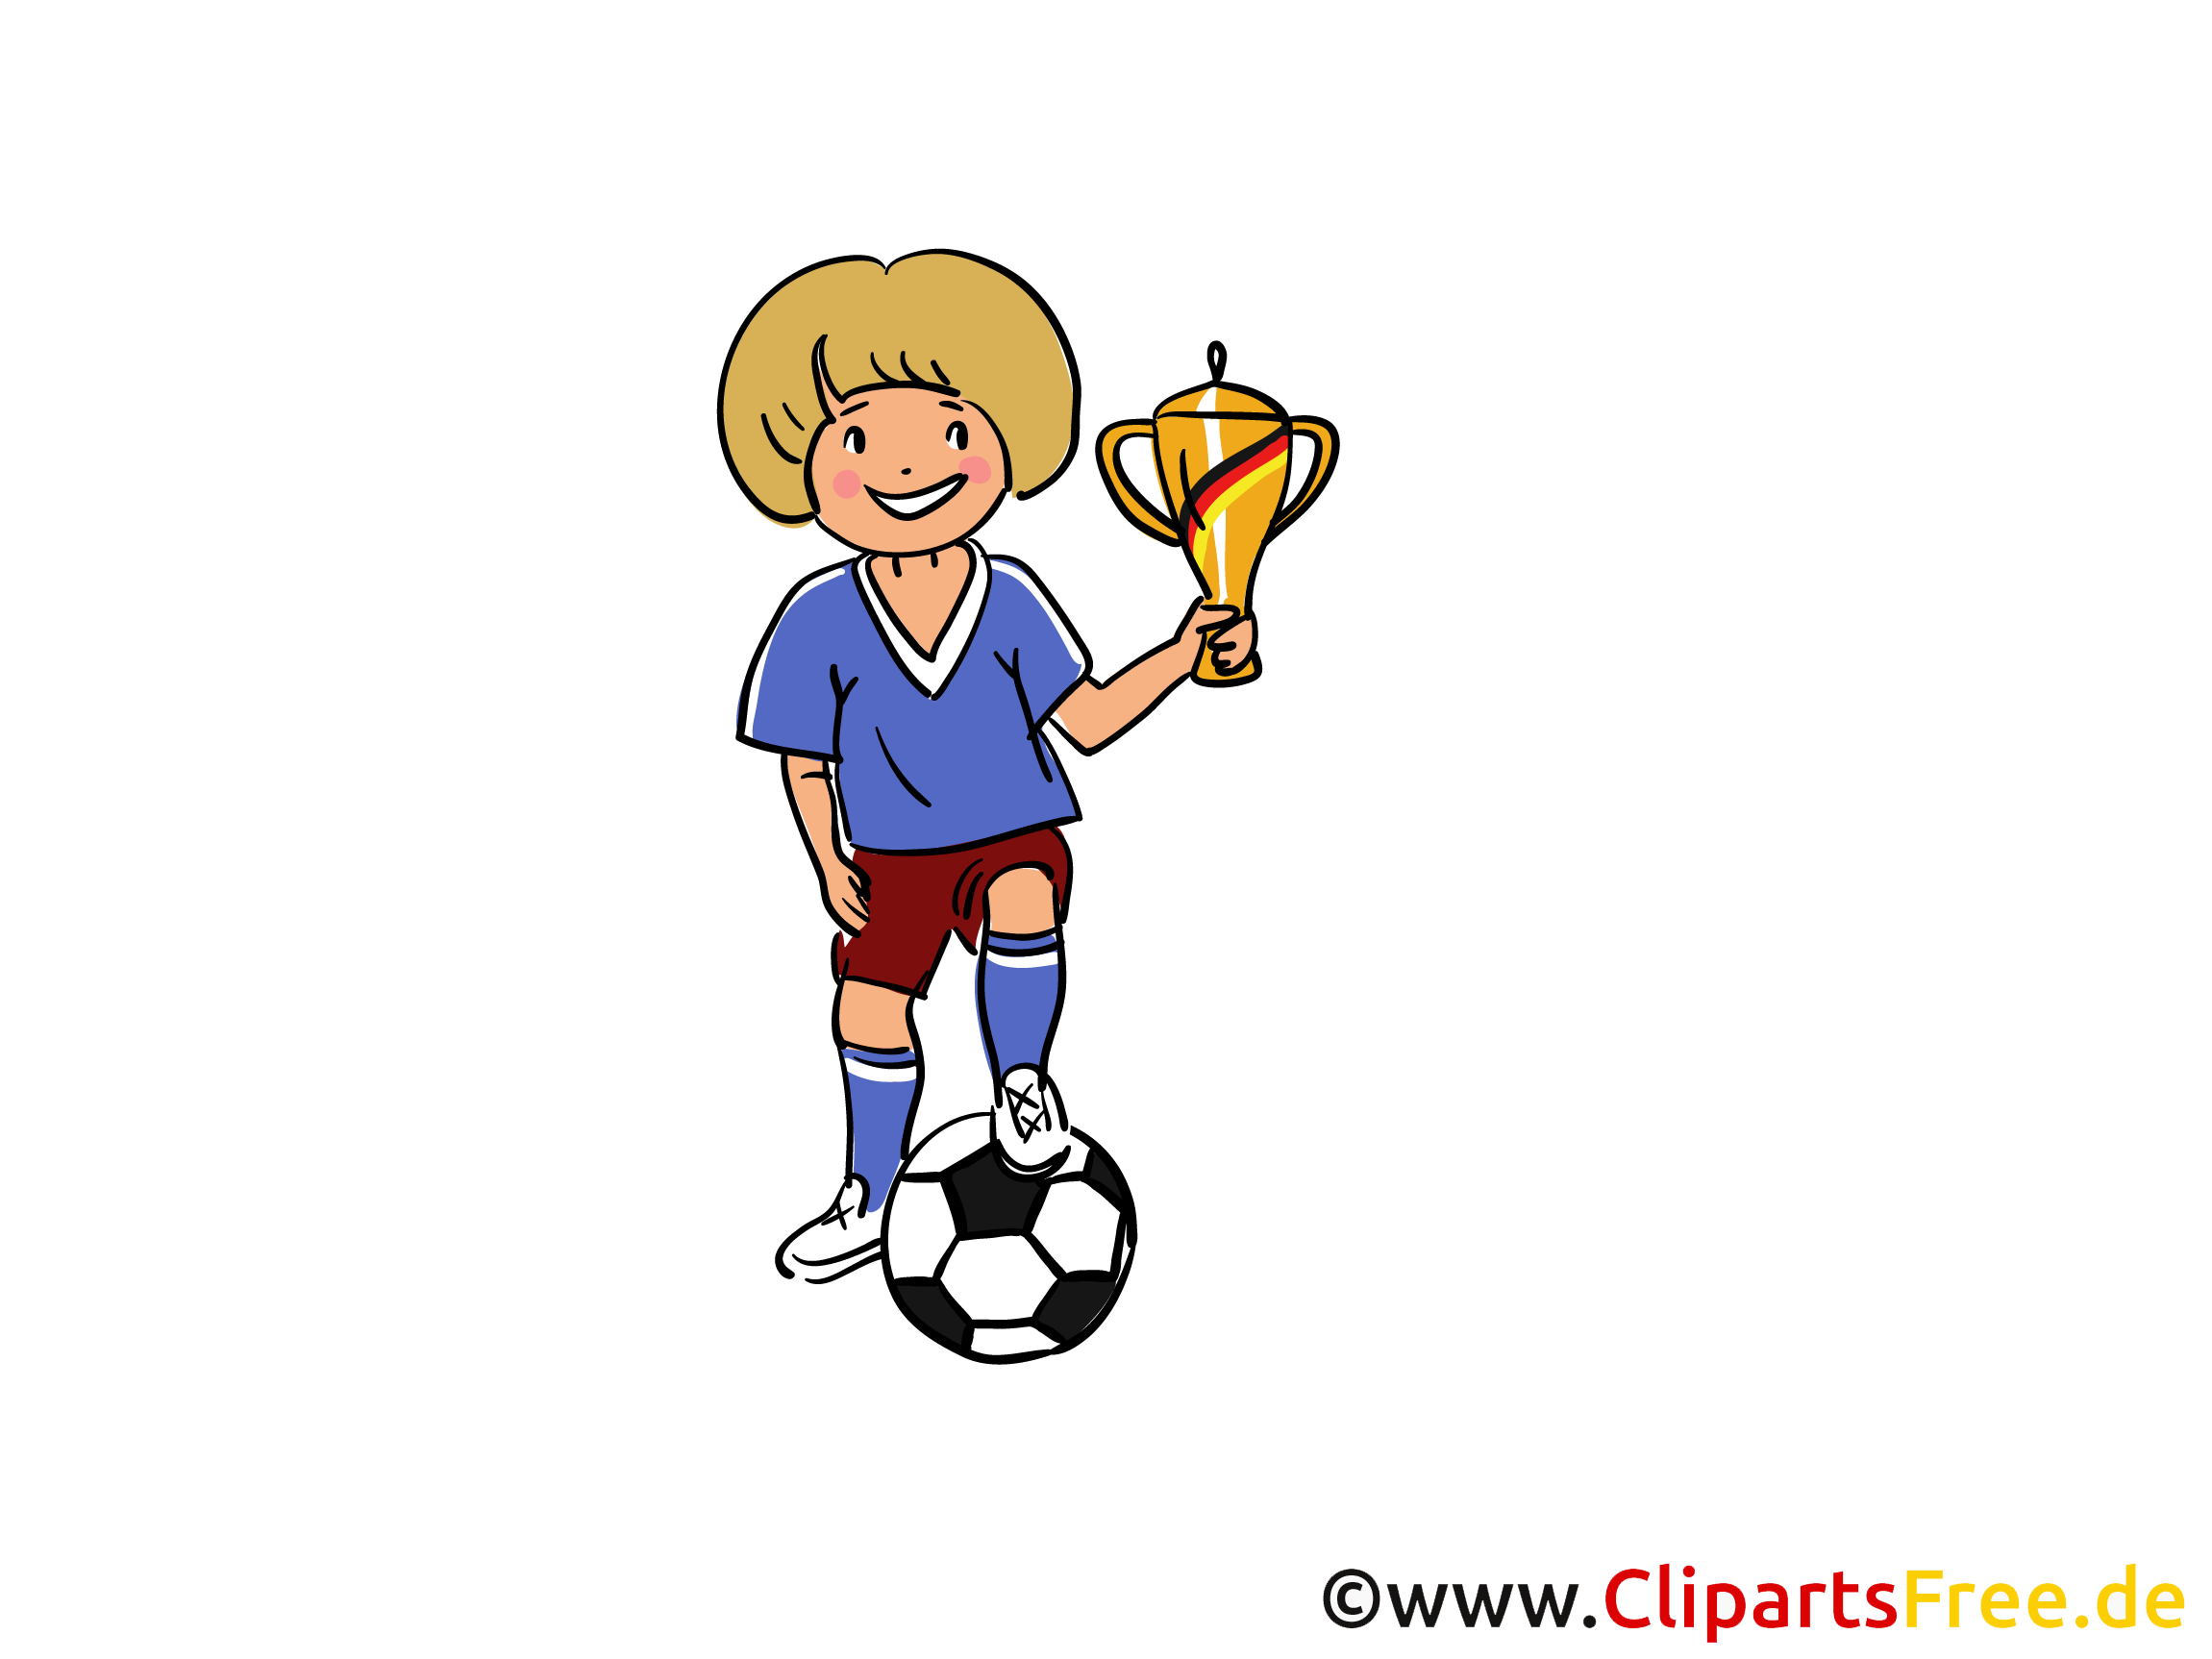 Pokal Clipart, Bild, Illustration gratis